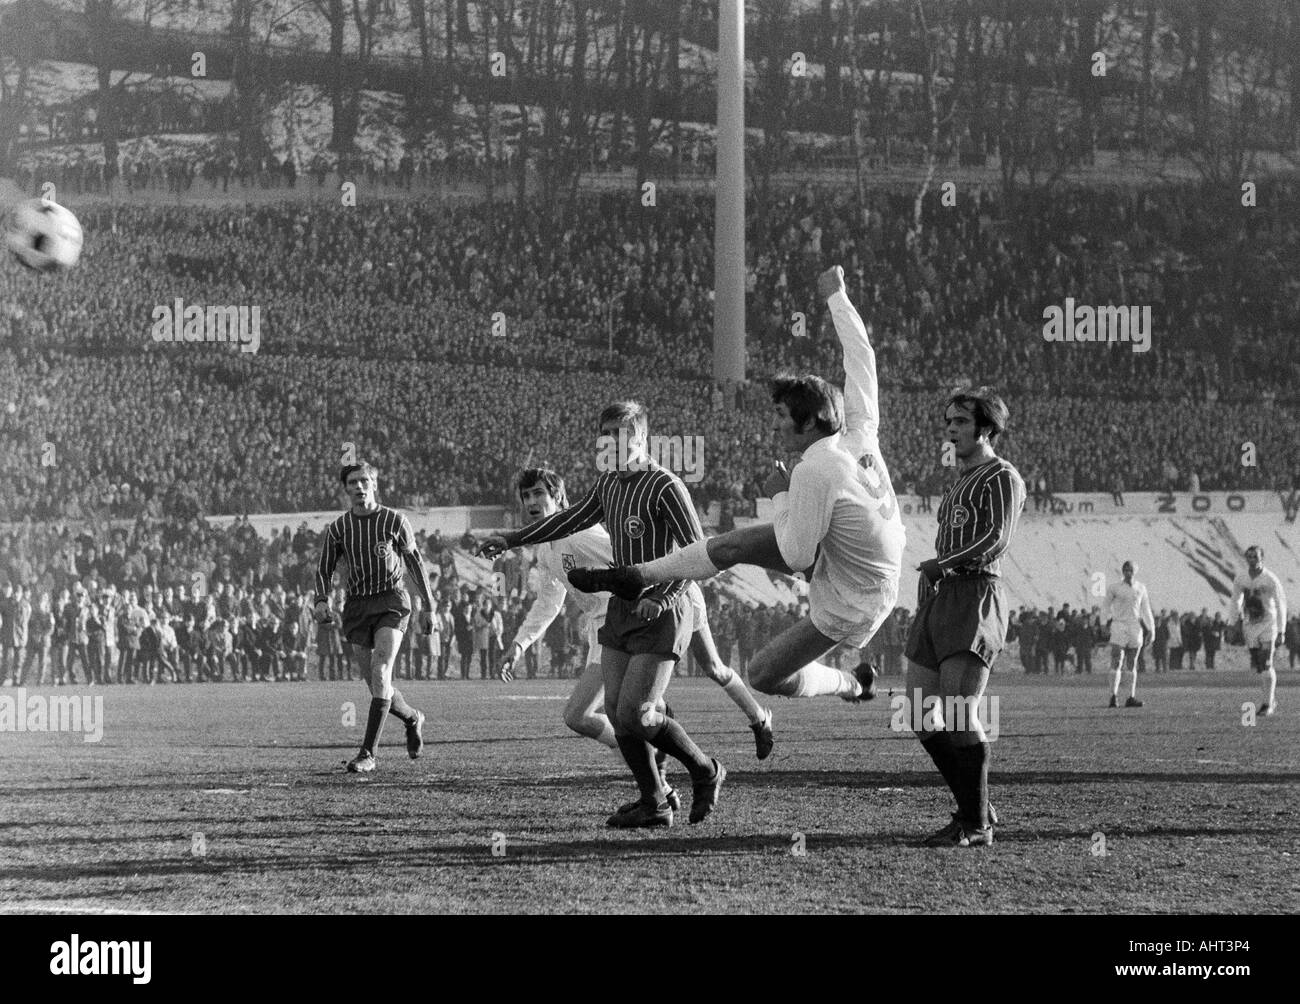 football, Regionalliga West, 1970/1971, Stadium am Zoo in Wuppertal, Wuppertaler SV versus Fortuna Duesseldorf 1:1, scene of the match, f.l.t.r. Fred Hesse (Ddorf), Gustav Jung (WSV), Werner Lungwitz (Ddorf), Guenter Proepper (WSV) with a volley, Egon Koe - Stock Image